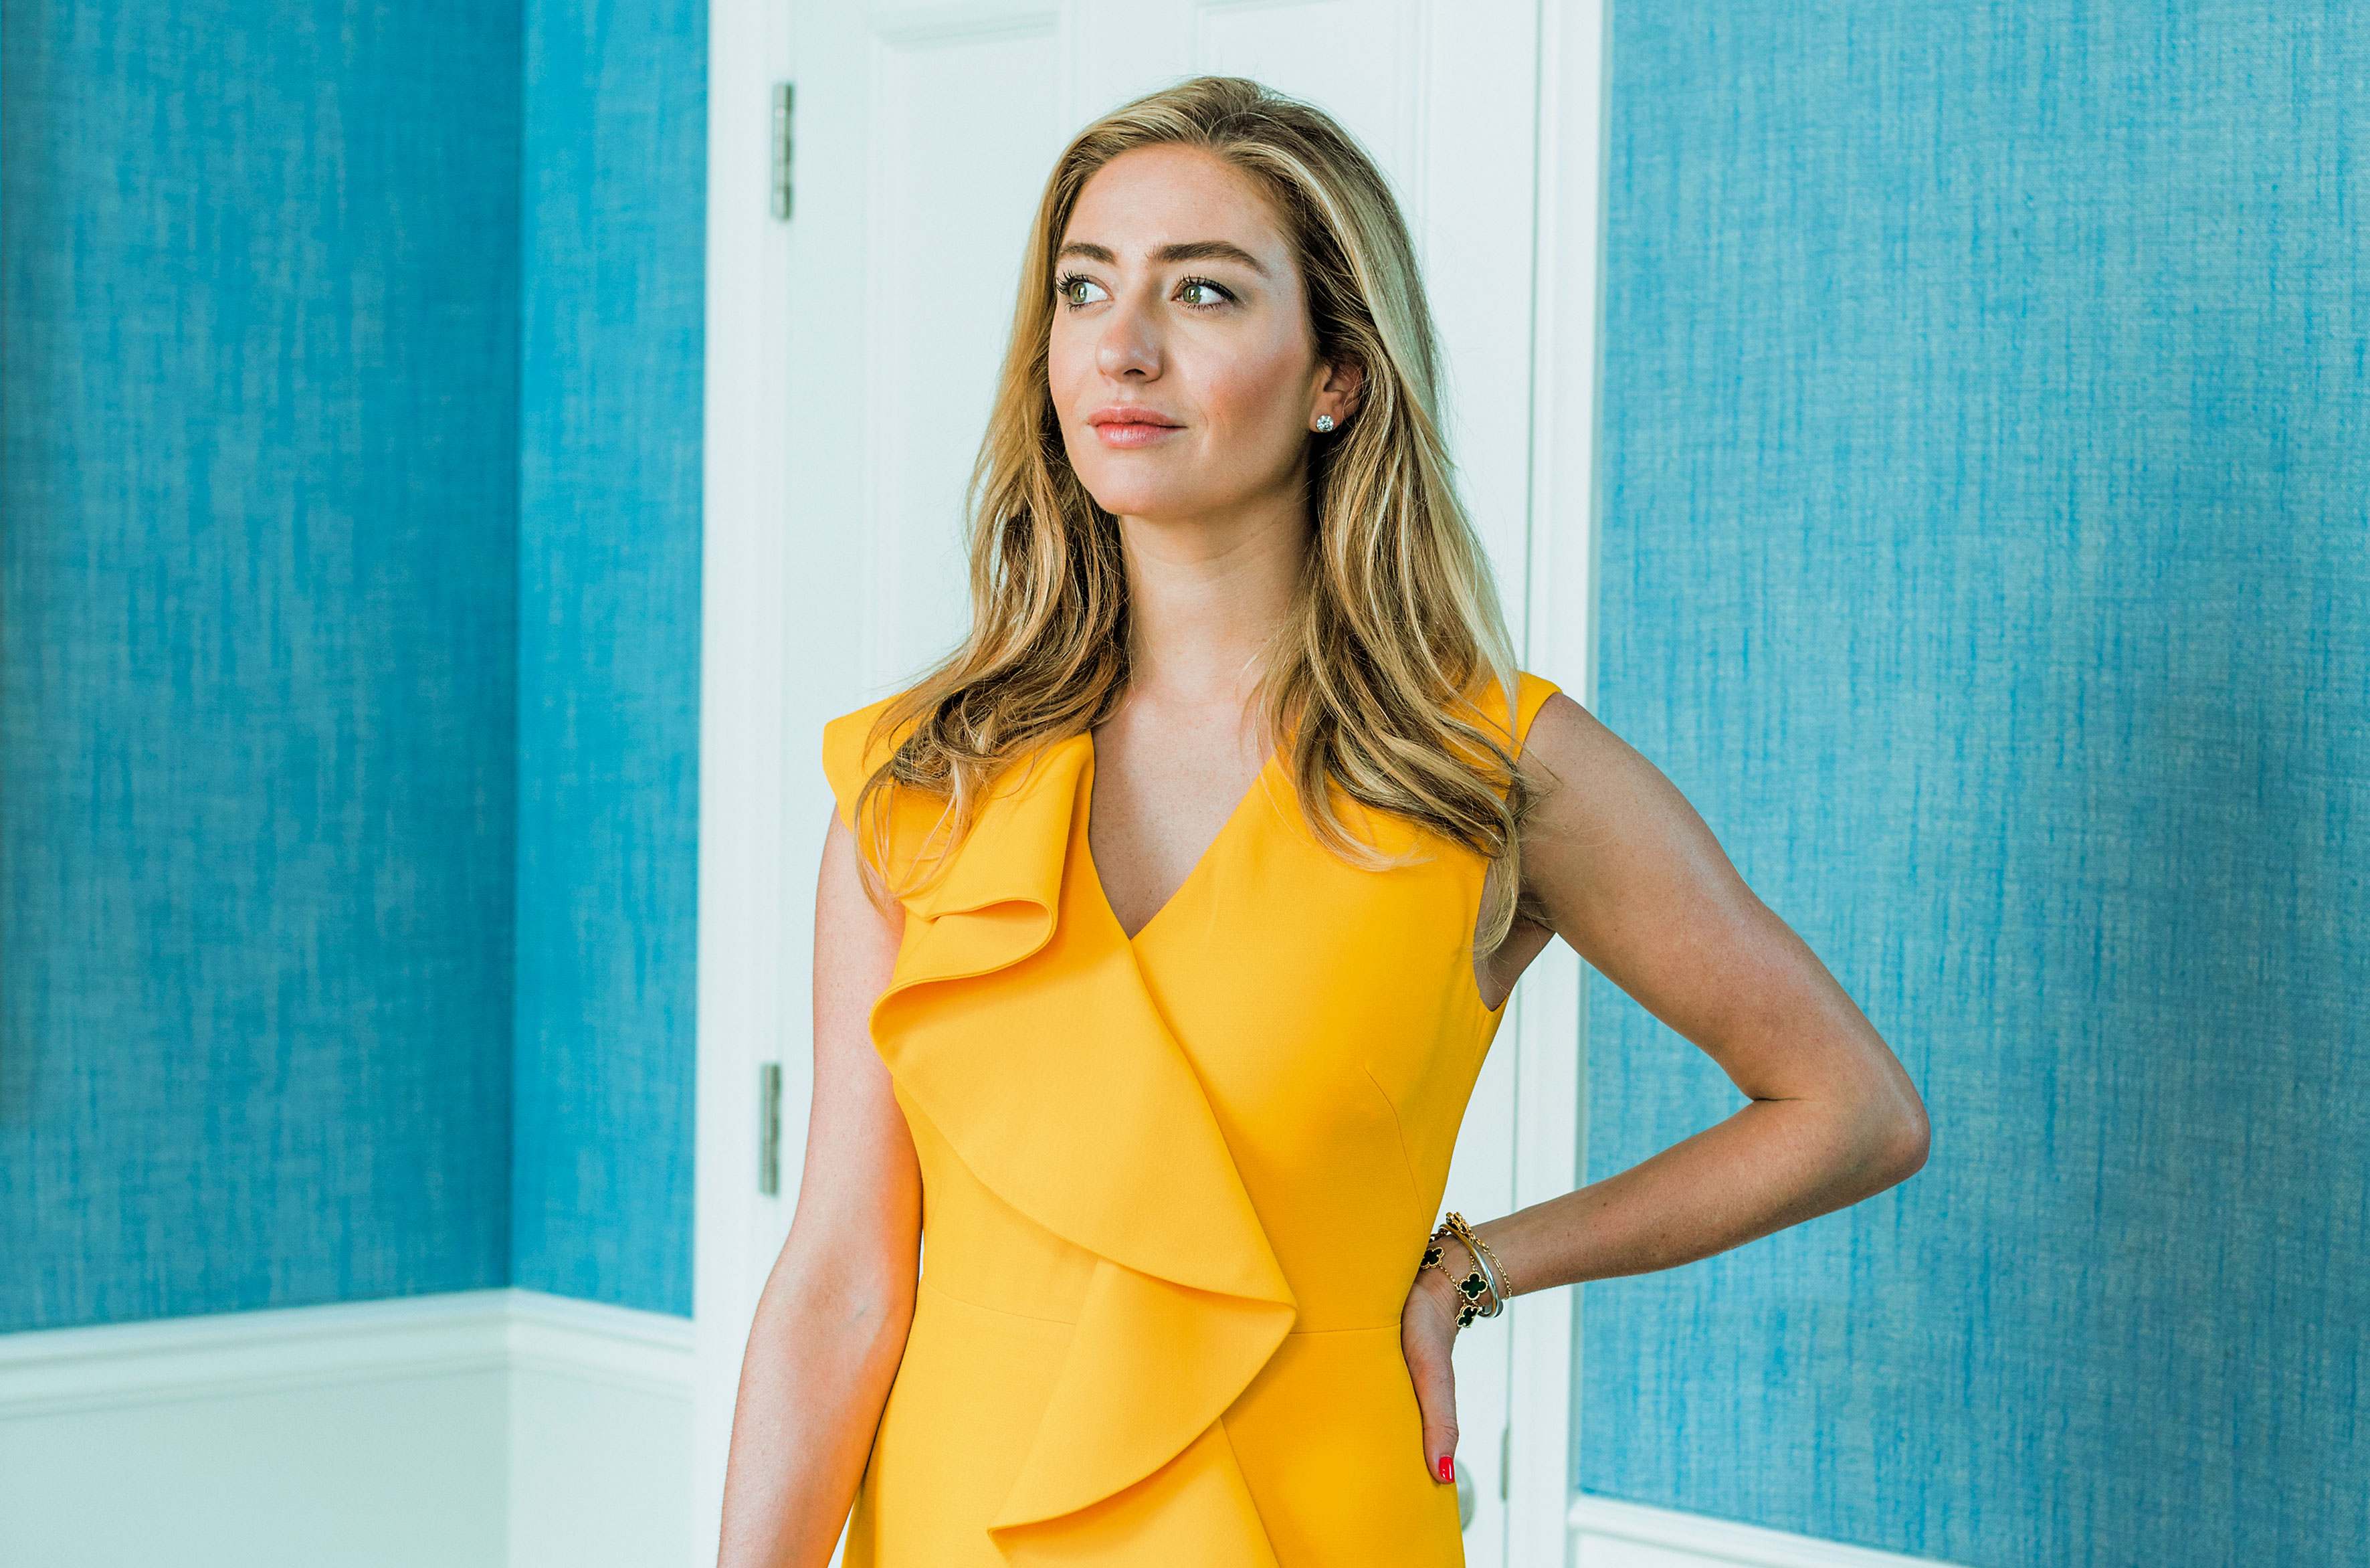 Ex-Tinder whizz Whitney Wolfe on her new female dating app Bumble